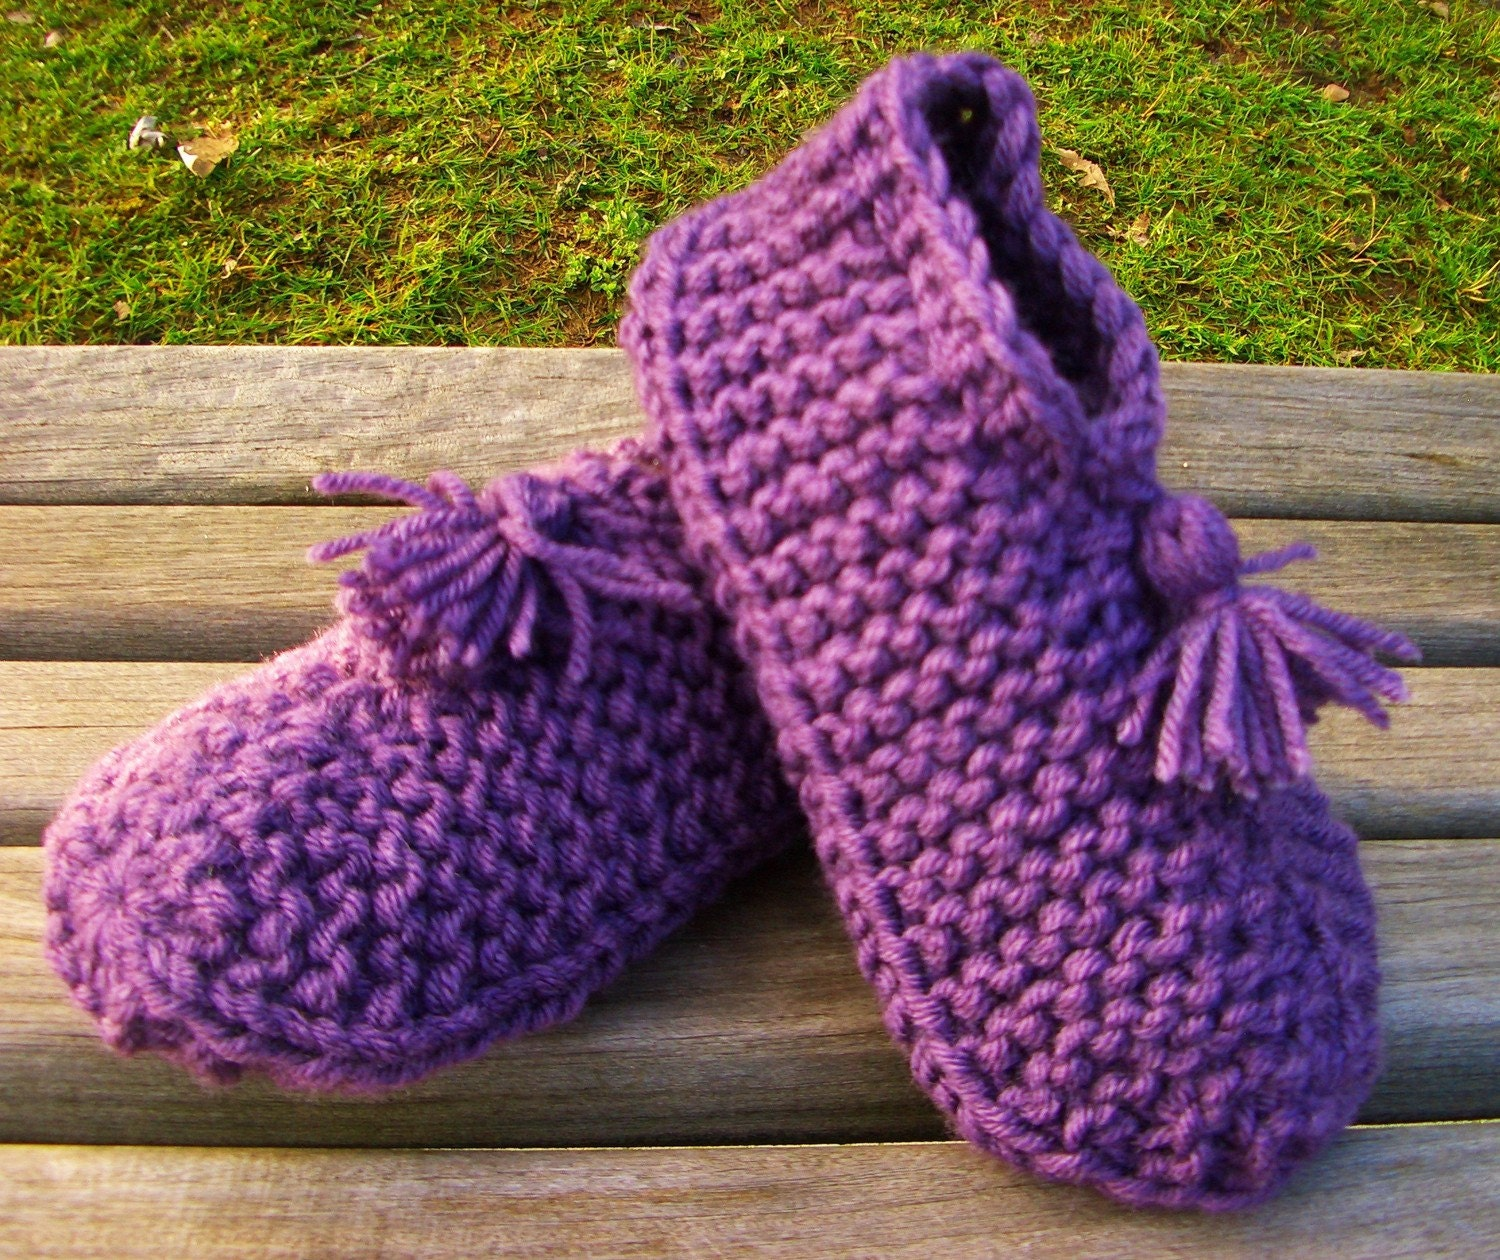 Easy Knitting Pattern For Short Row Slippers : Slipper Sock Patterns   Design Patterns